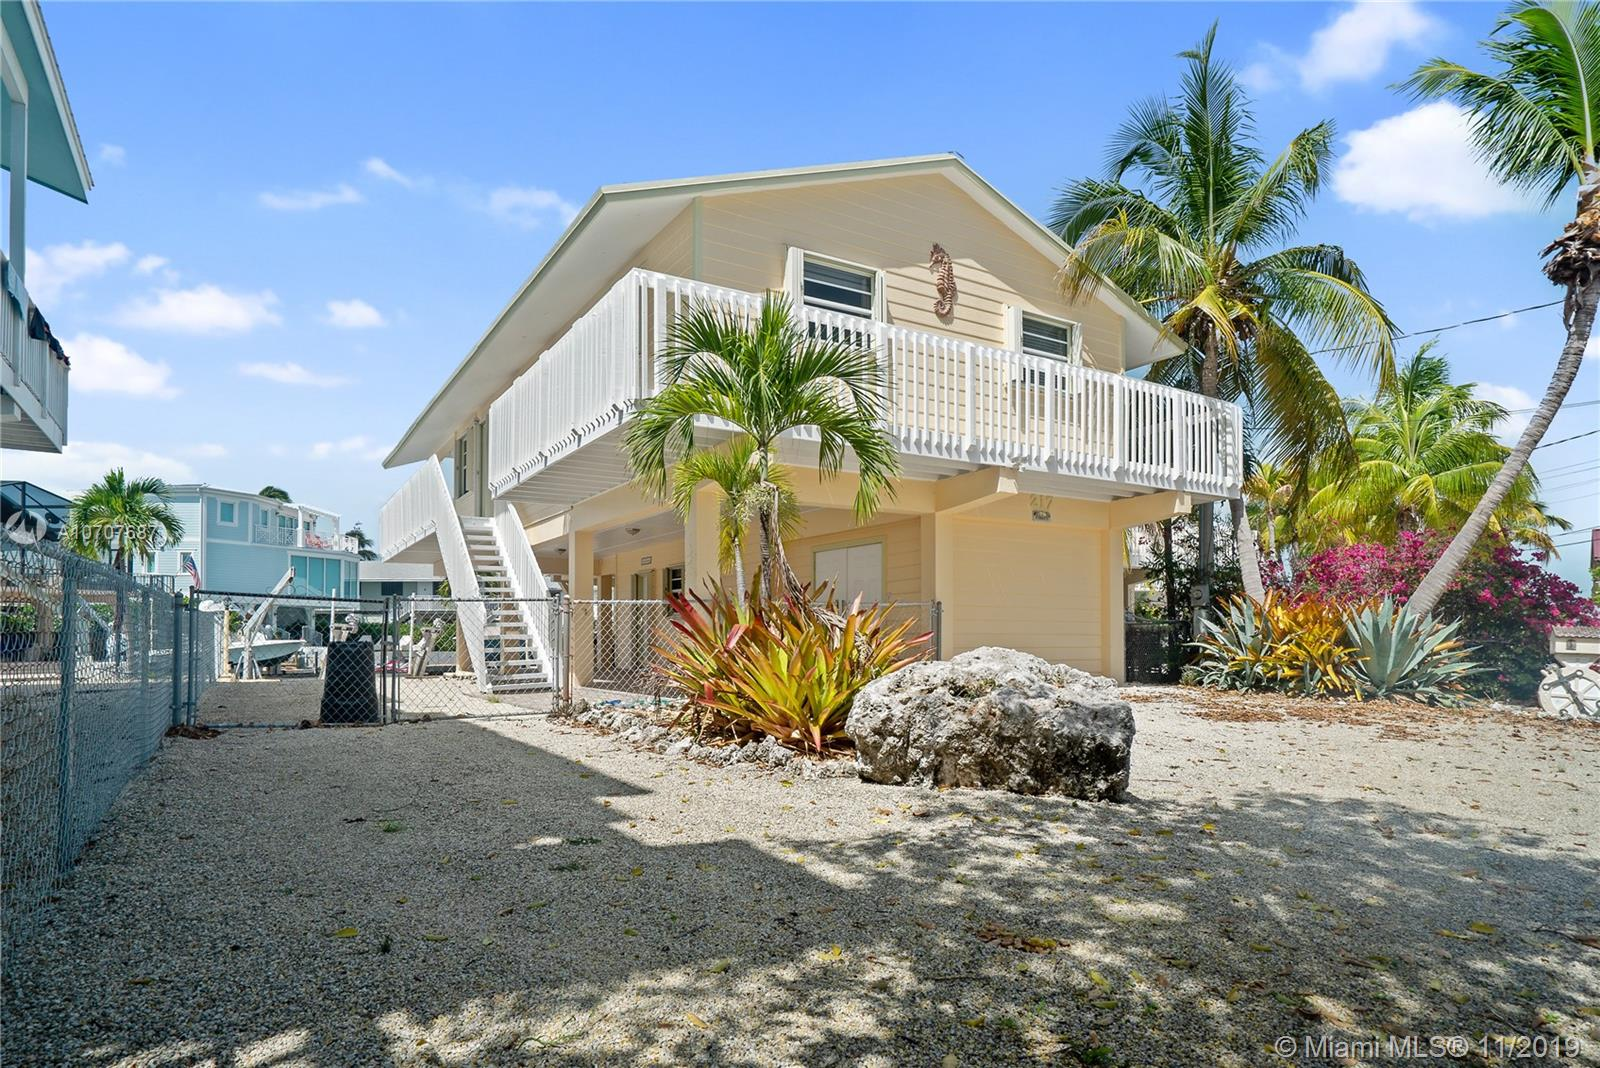 217 Bristol Ct, Other City - Keys/Islands/Caribbean, FL 33070